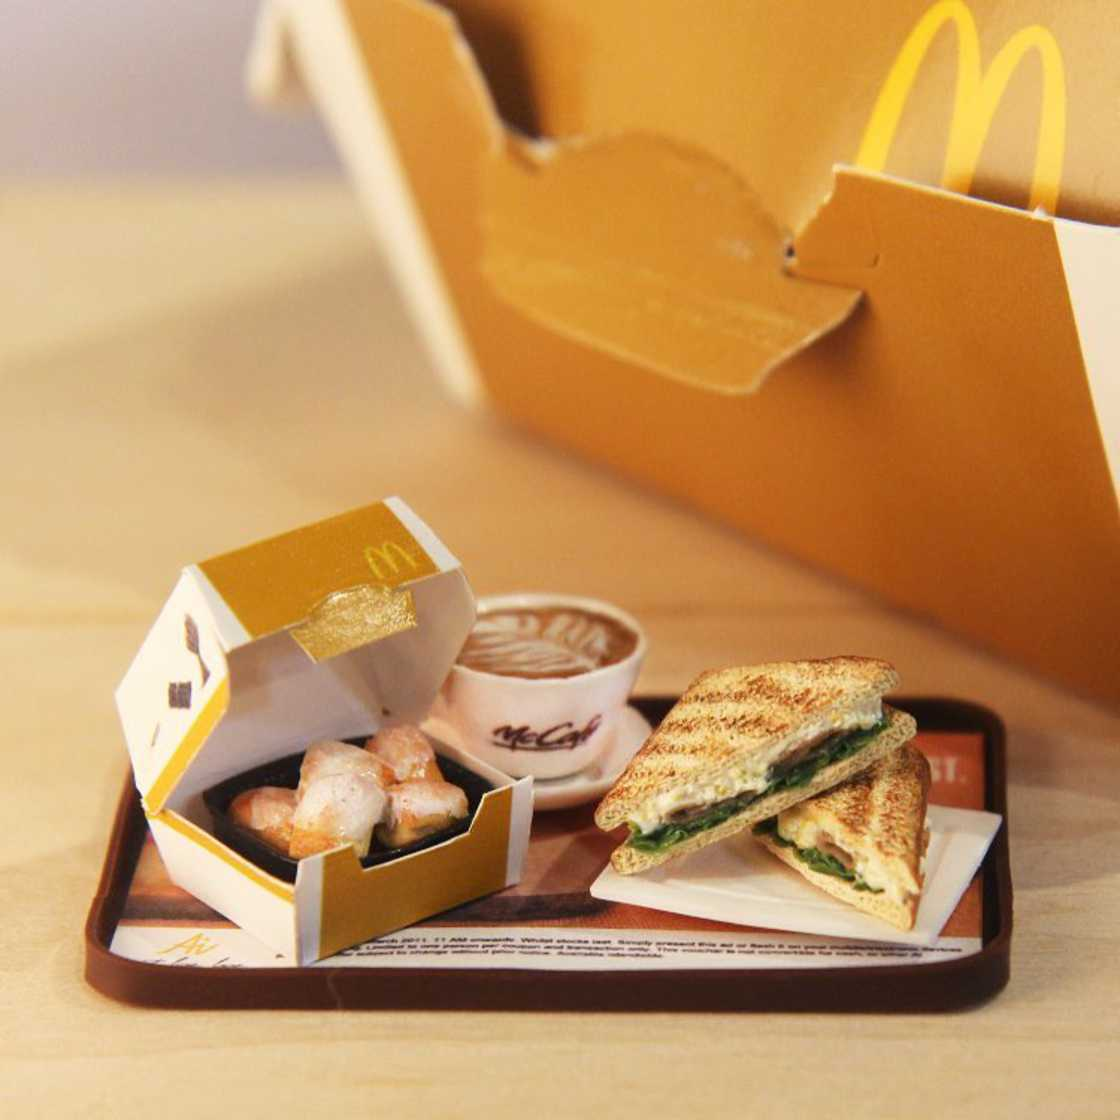 Tiny Food - Appetizing and ultra-realistic miniatures by Jocelyn Teo